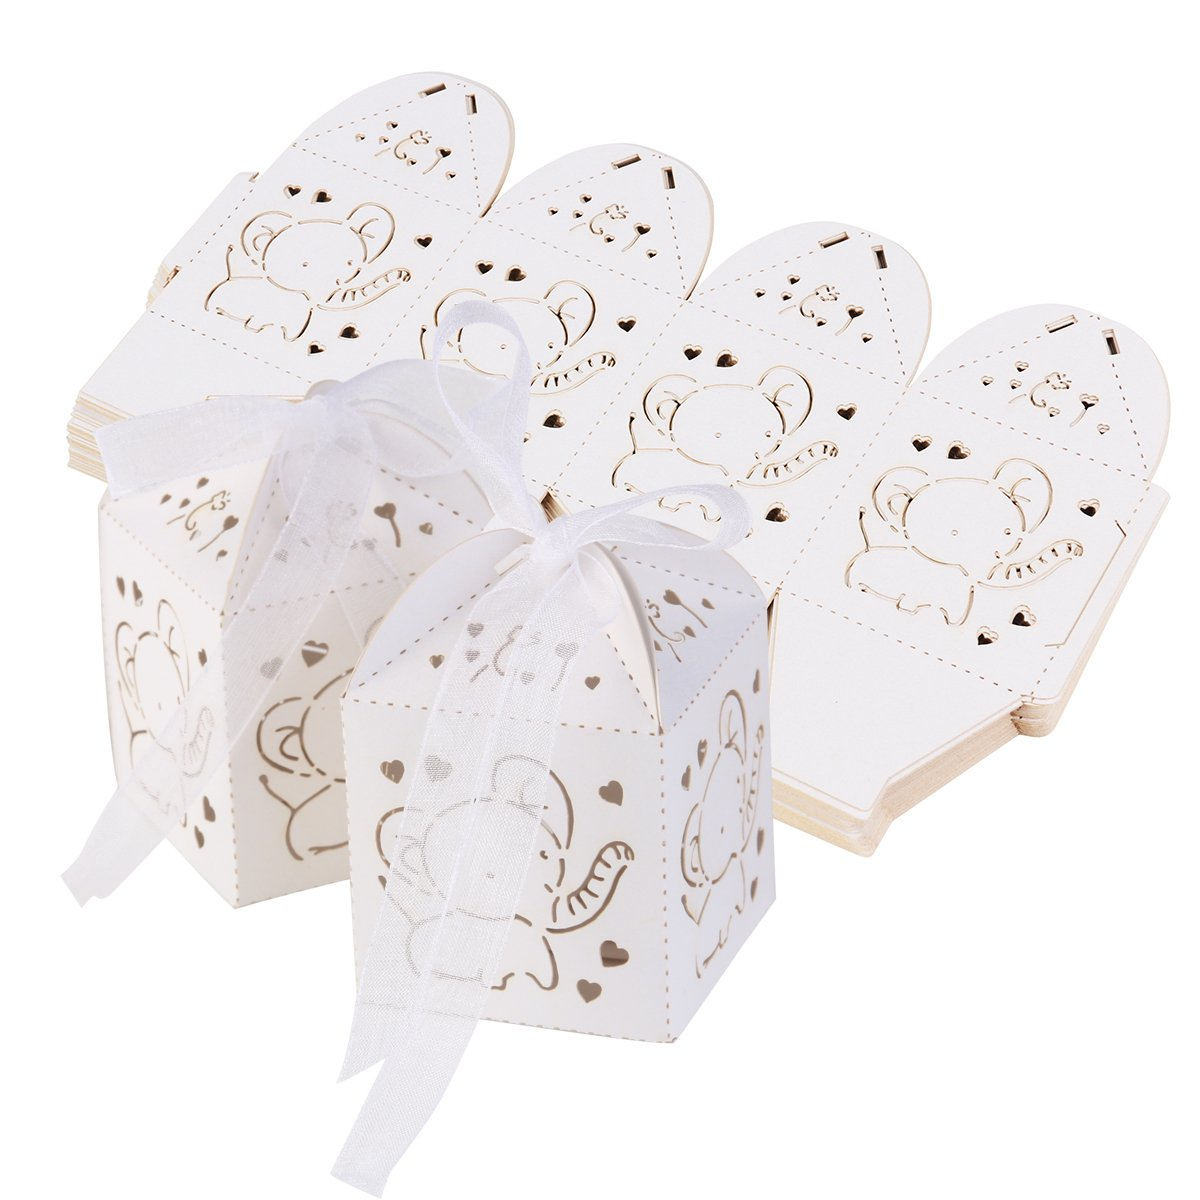 Tinksky 50pcs Hollow Out Elephant Pattern Candy Boxes Gift Bags Baby Shower Wedding Favors (White)